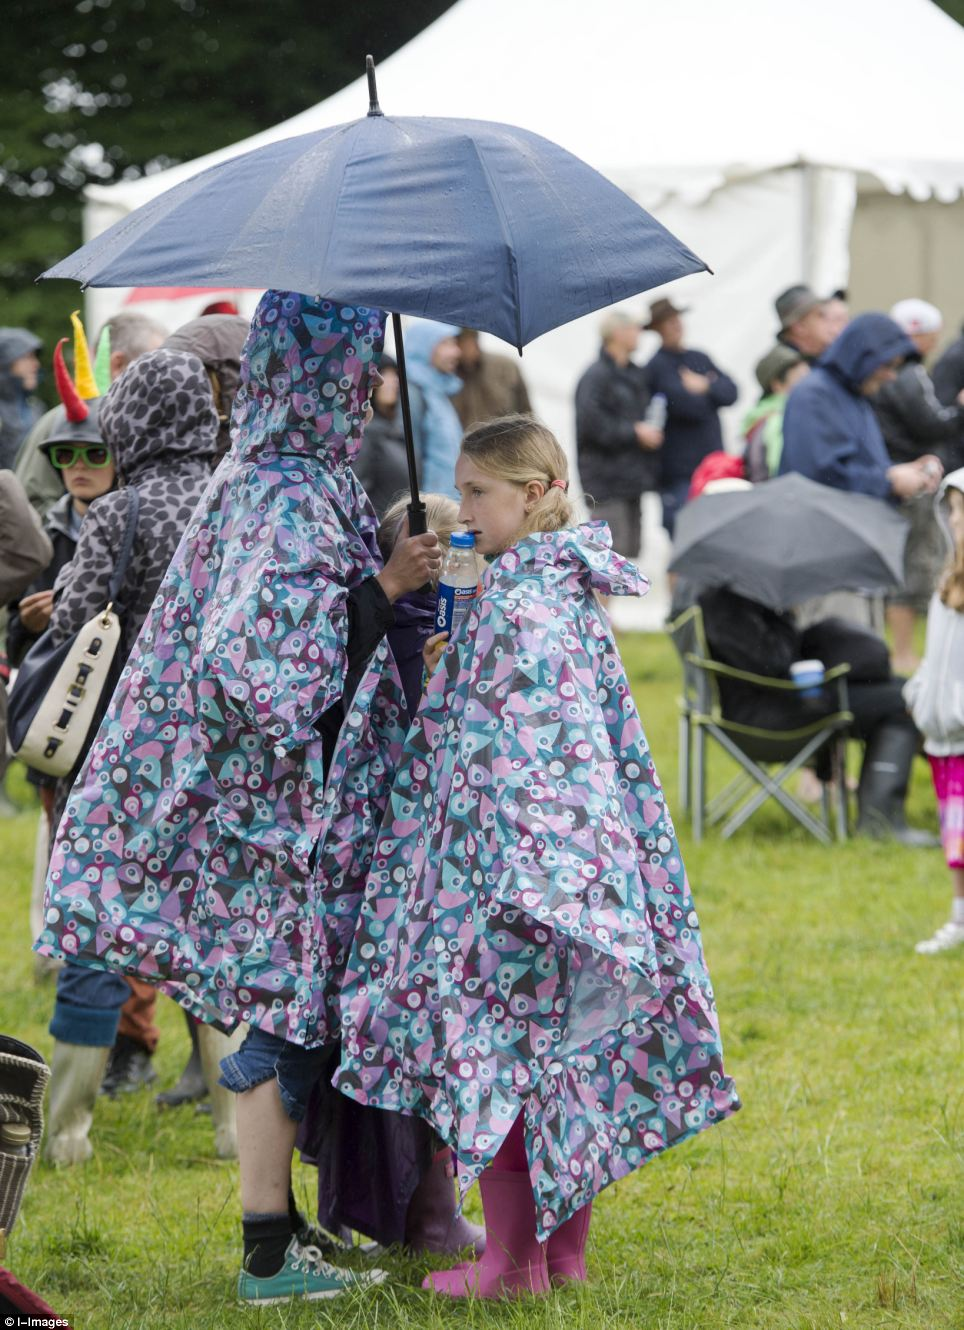 Matching coats: These two festival-goers at the Cornbury Music Festival in Chipping Norton, Oxfordshire, brighten up a bleak day in patterned purple rain coats